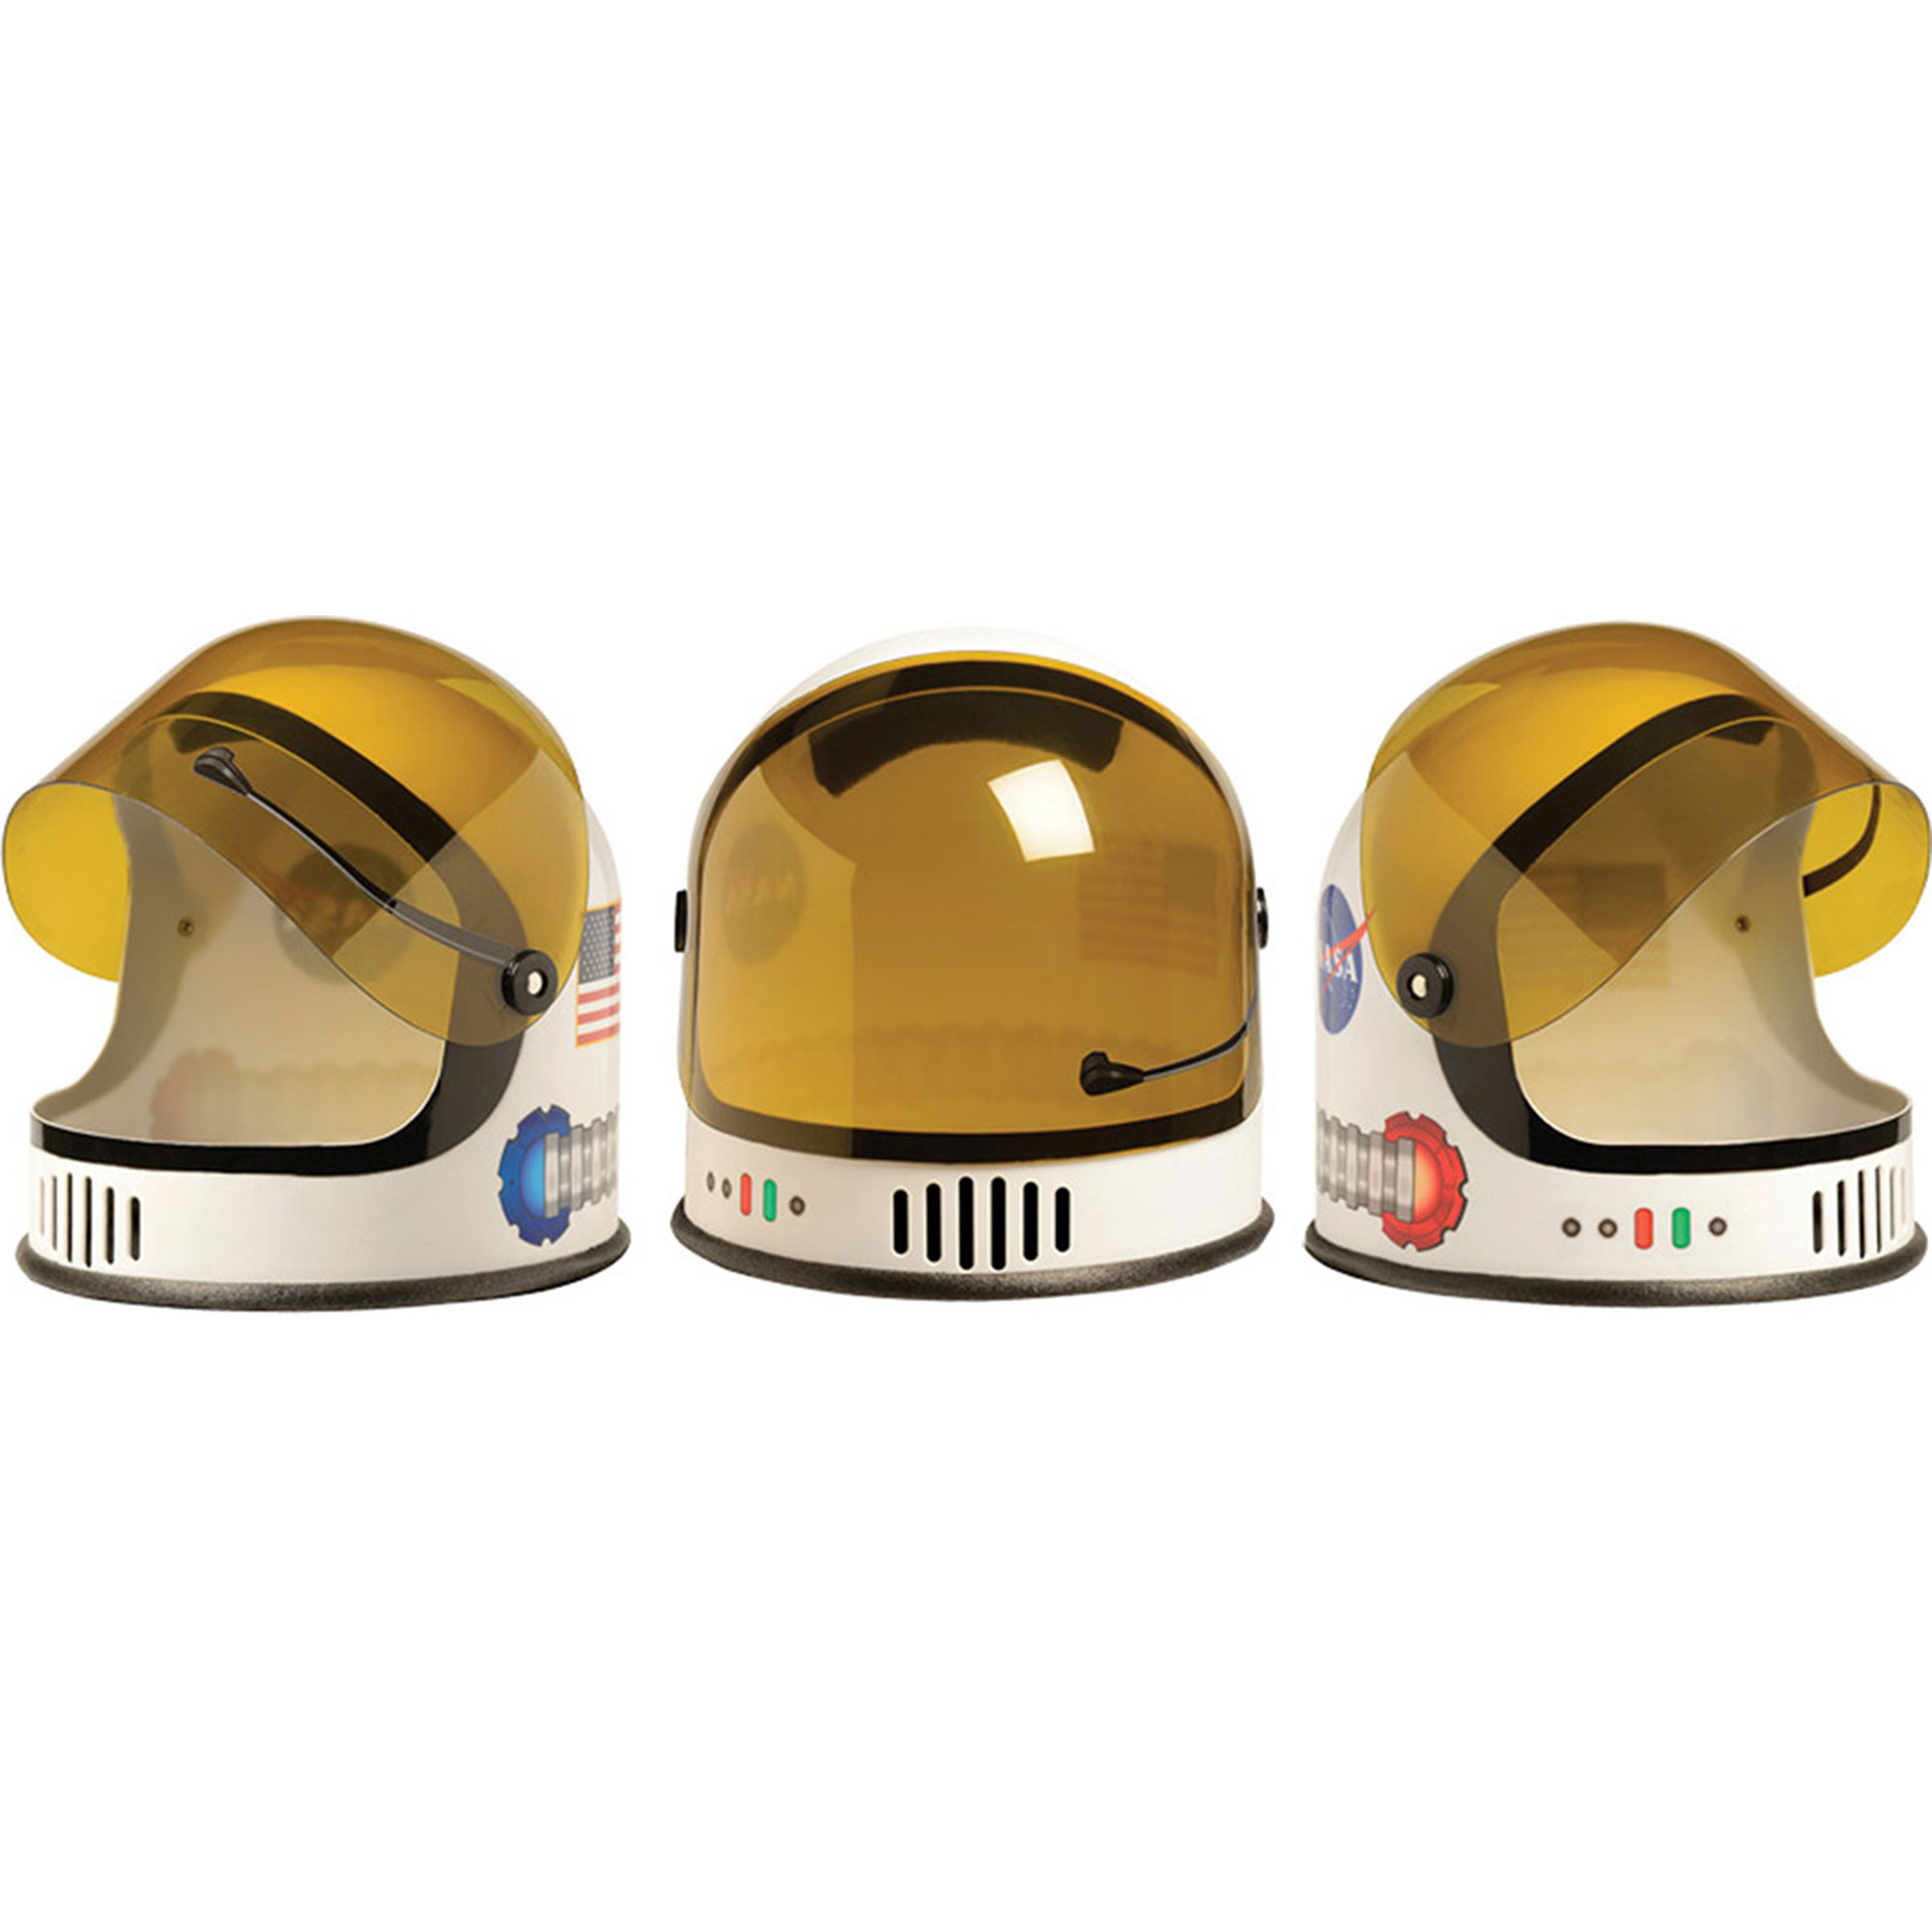 Morris Costumes New Space Flight Astronaut Helmet Ages 3 To 10 Hat, Style ARASHELMET